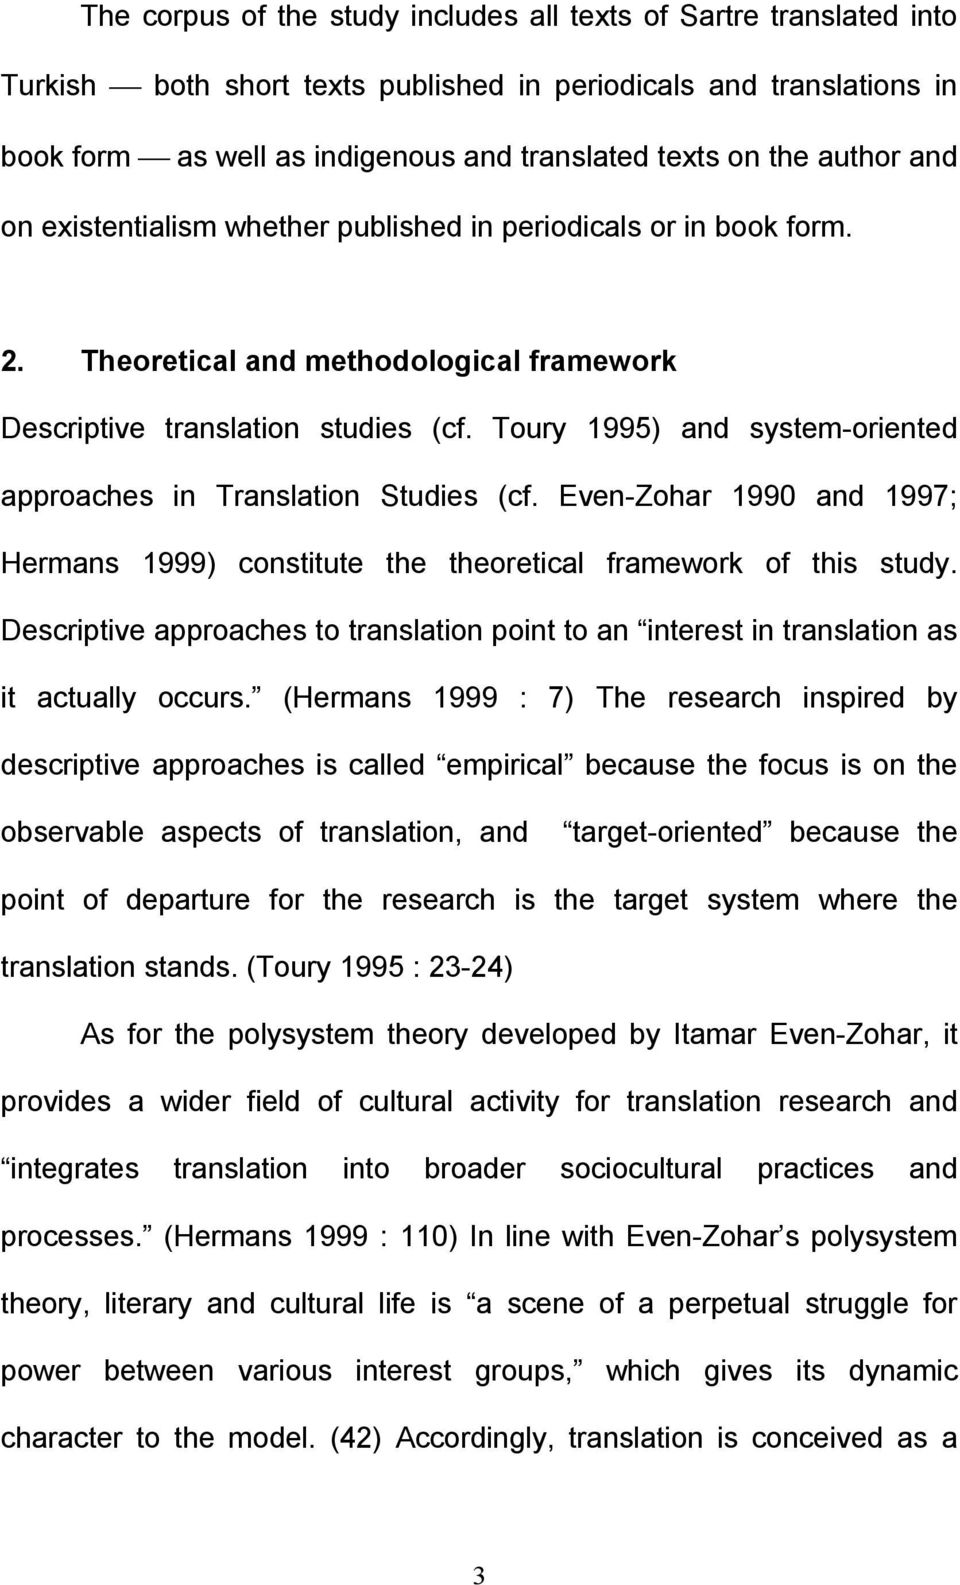 Toury 1995) and system-oriented approaches in Translation Studies (cf. Even-Zohar 1990 and 1997; Hermans 1999) constitute the theoretical framework of this study.